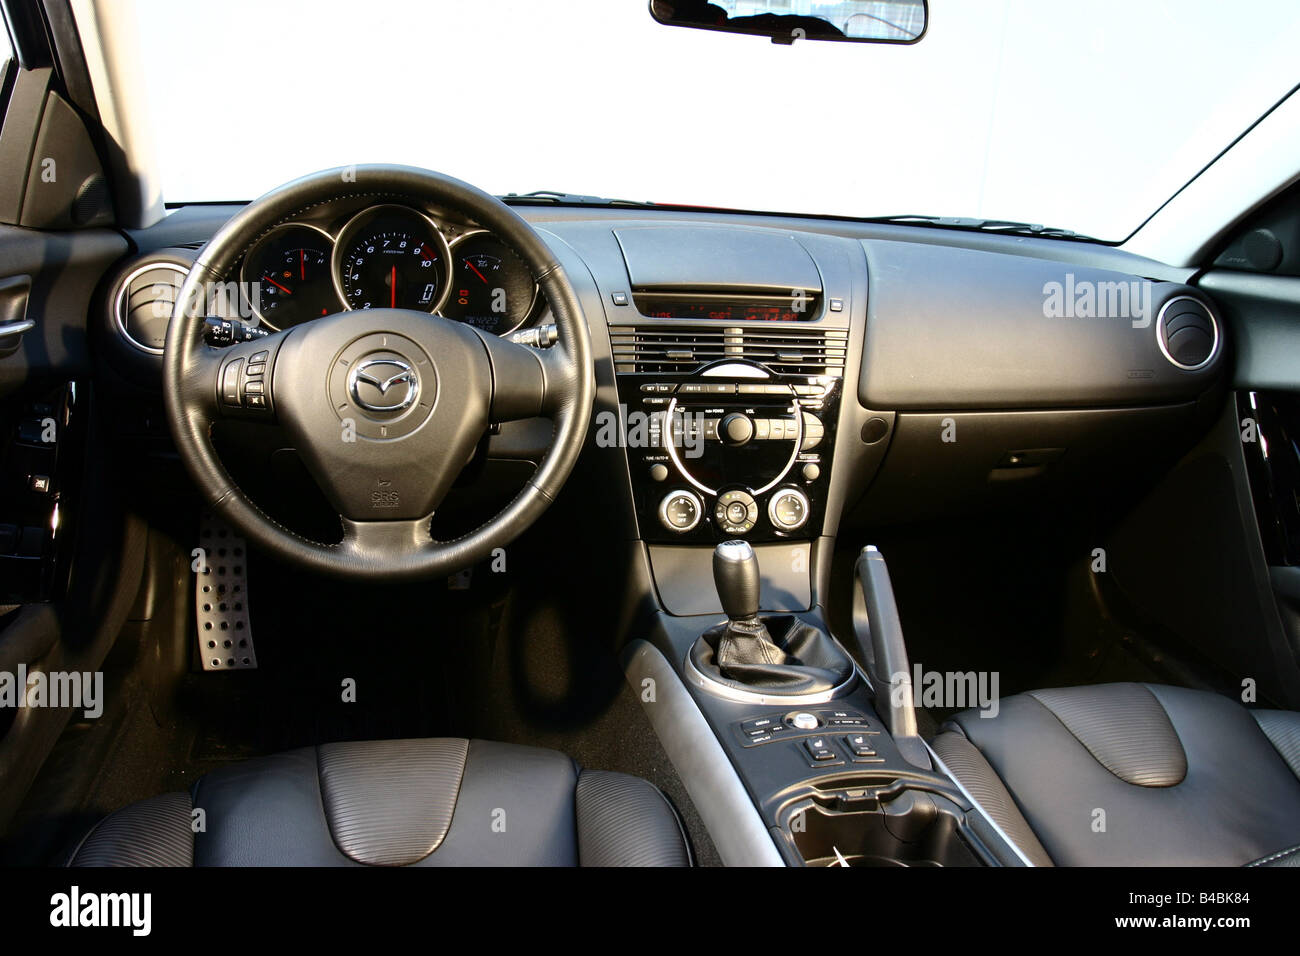 Interior Of Mazda Rx 8 Stock Photos & Interior Of Mazda Rx 8 Stock ...